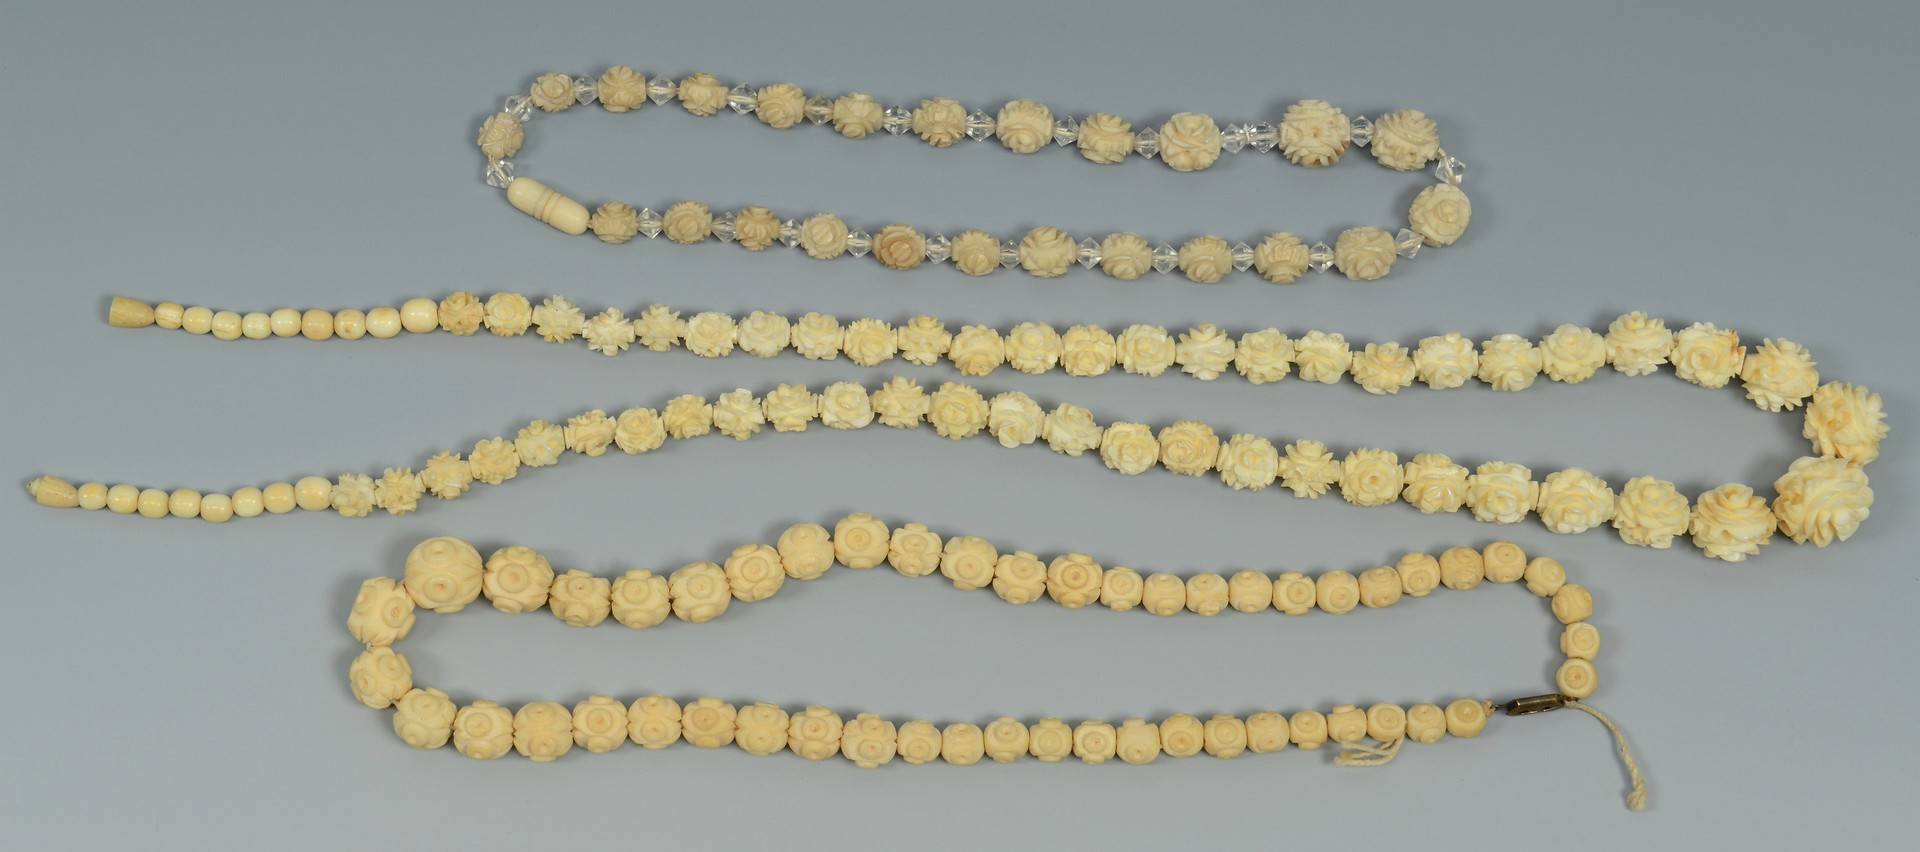 Lot 3383191: Group of Chinese Ivory, Bone, and Other Jewelry